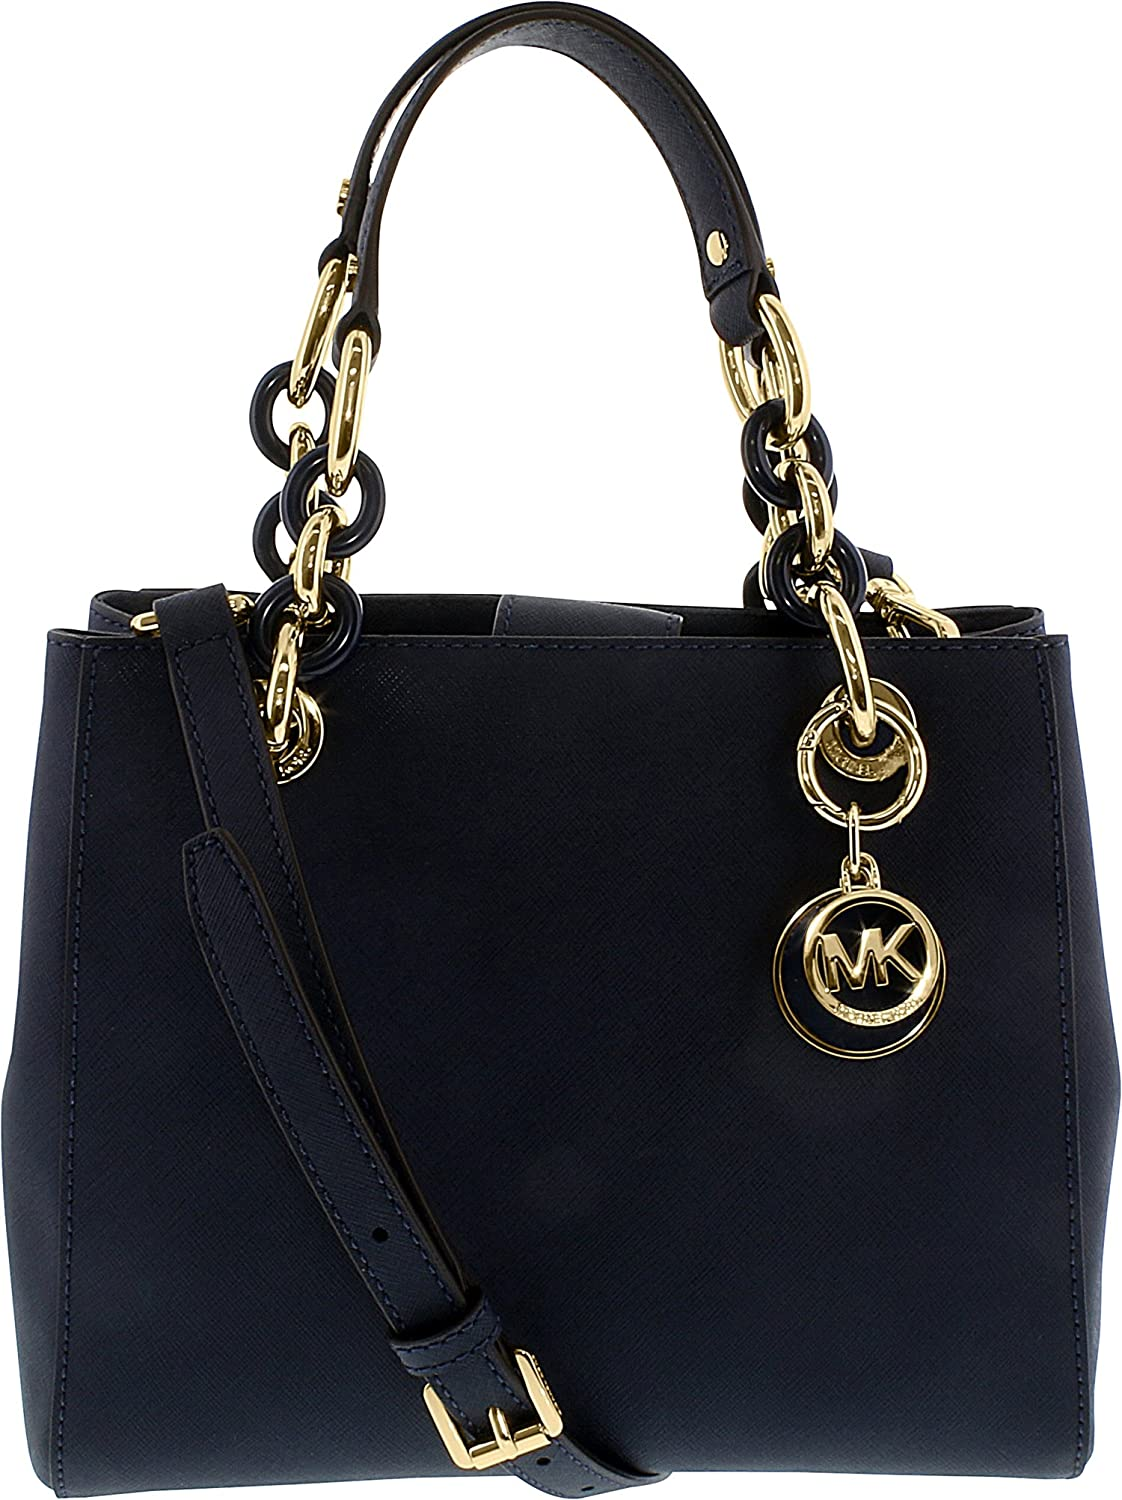 Michael Kors Cynthia SMALL Leather Satchel in NAVY